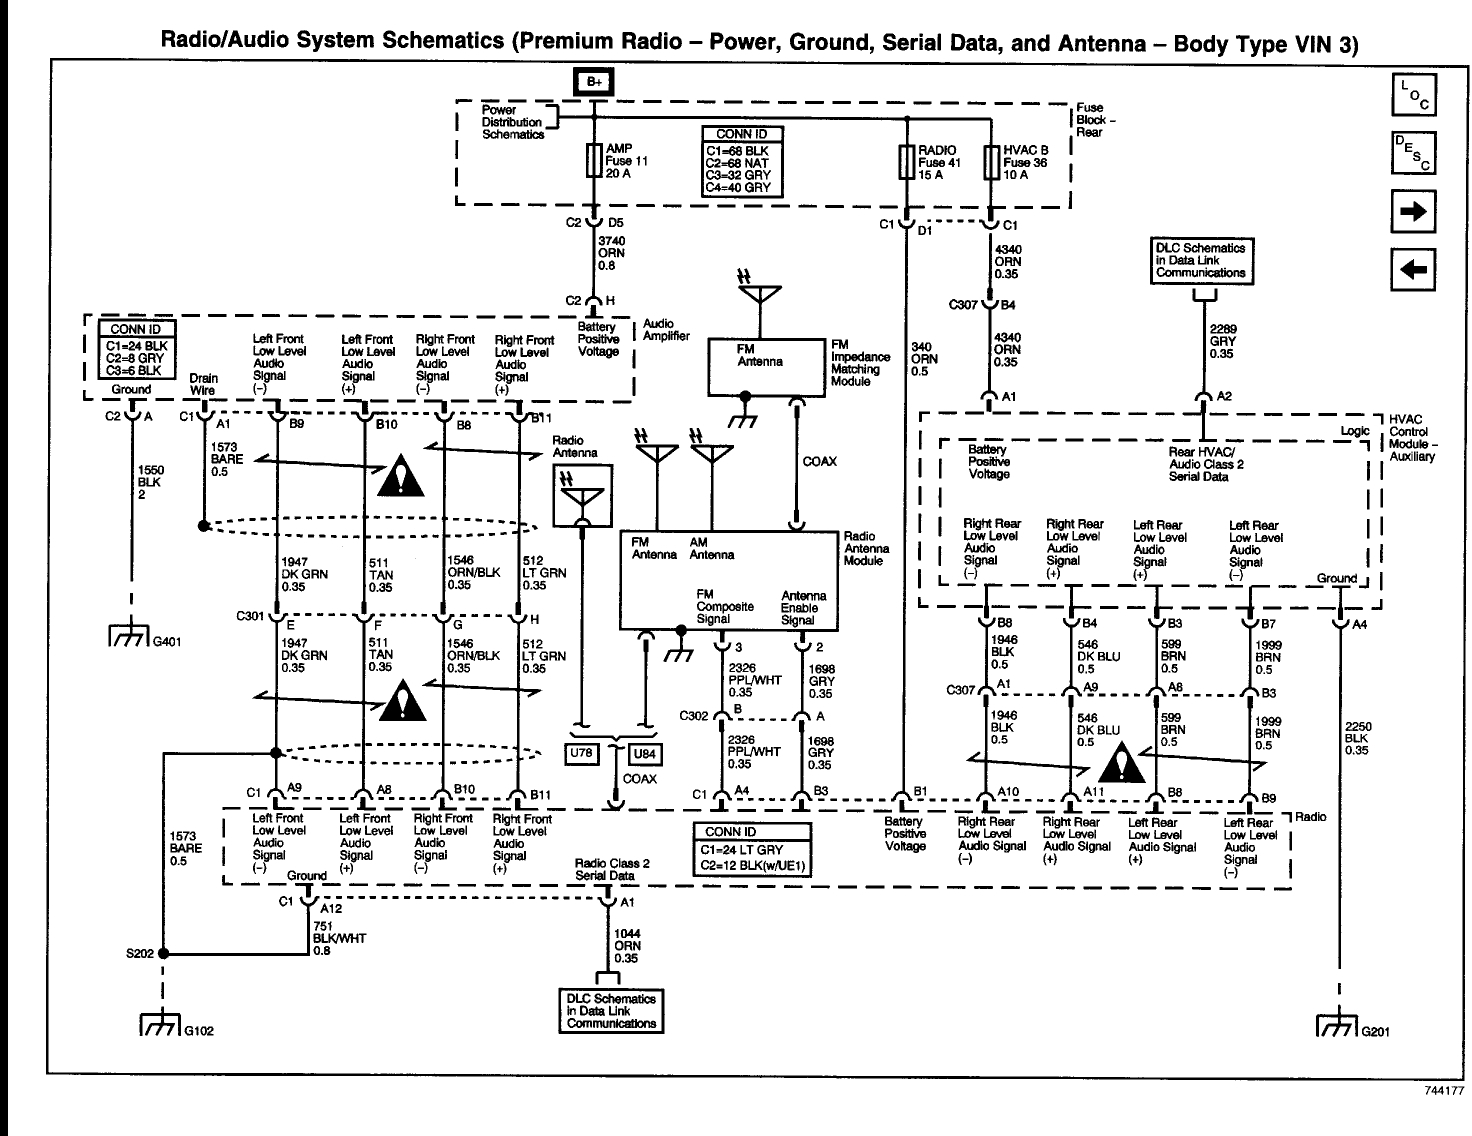 2009 gmc wiring diagram electrical diagrams forum u2022 rh woollenkiwi co uk 2006 gmc canyon radio wiring diagram 2007 gmc canyon radio wiring diagram